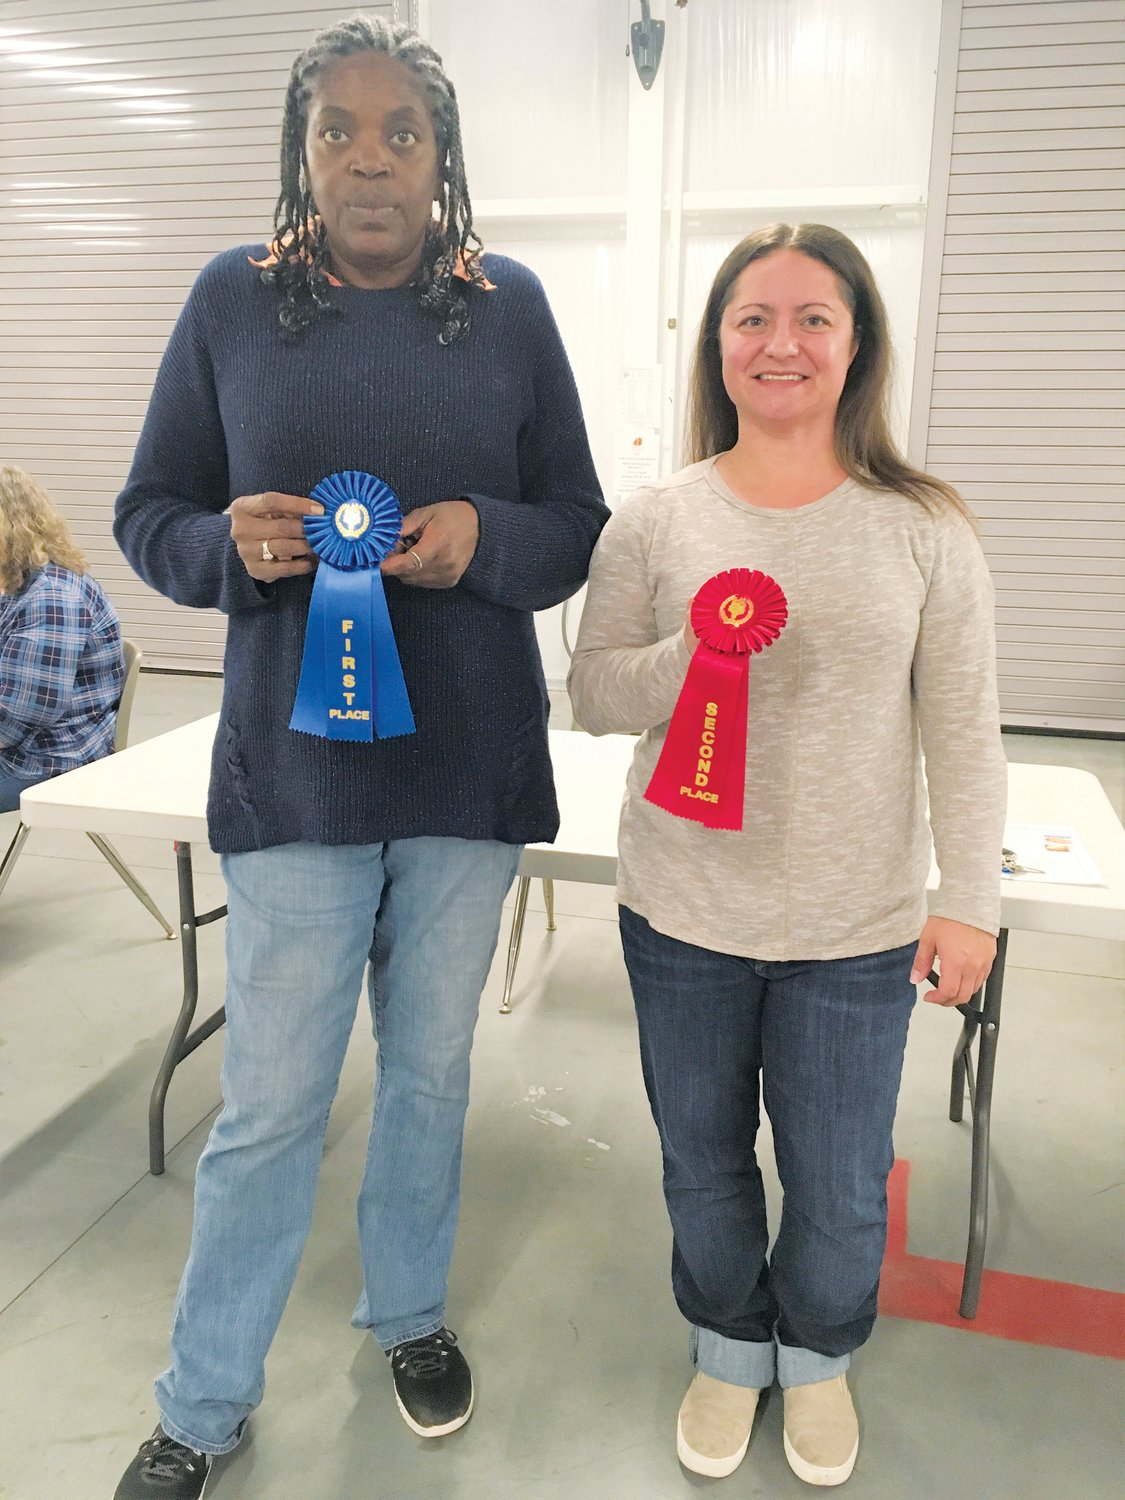 From left, Joyce Bowden of Grantham shows off her first place ribbon and Amanda Birmingham of Pikeville holds her second place ribbon for having the best dishes in the collard recipe contest at the Farm Credit Farmers Market.